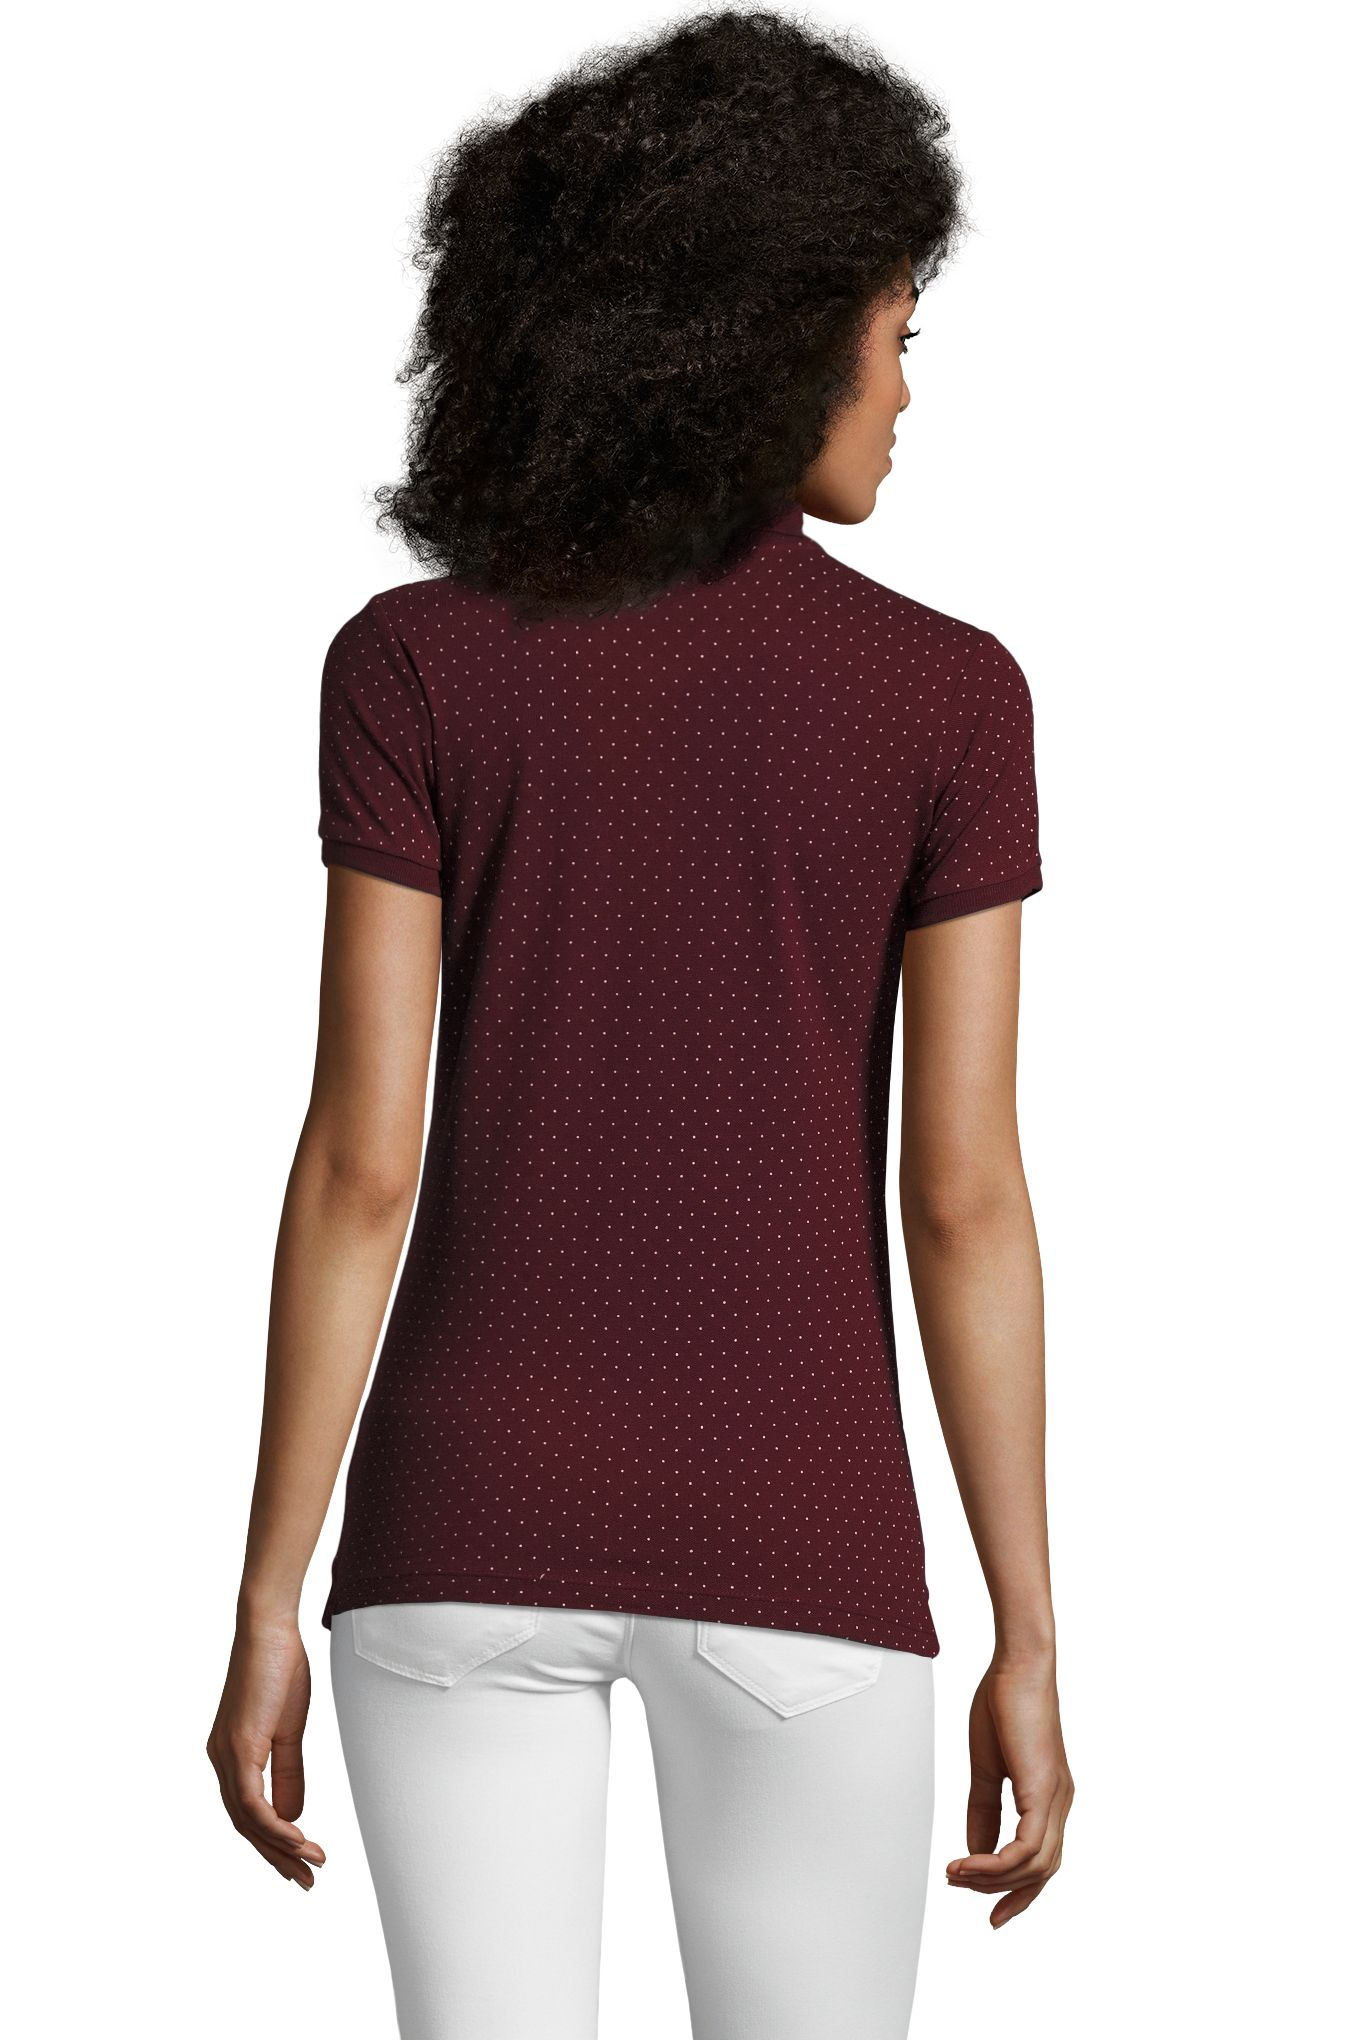 502 - Oxblood / White